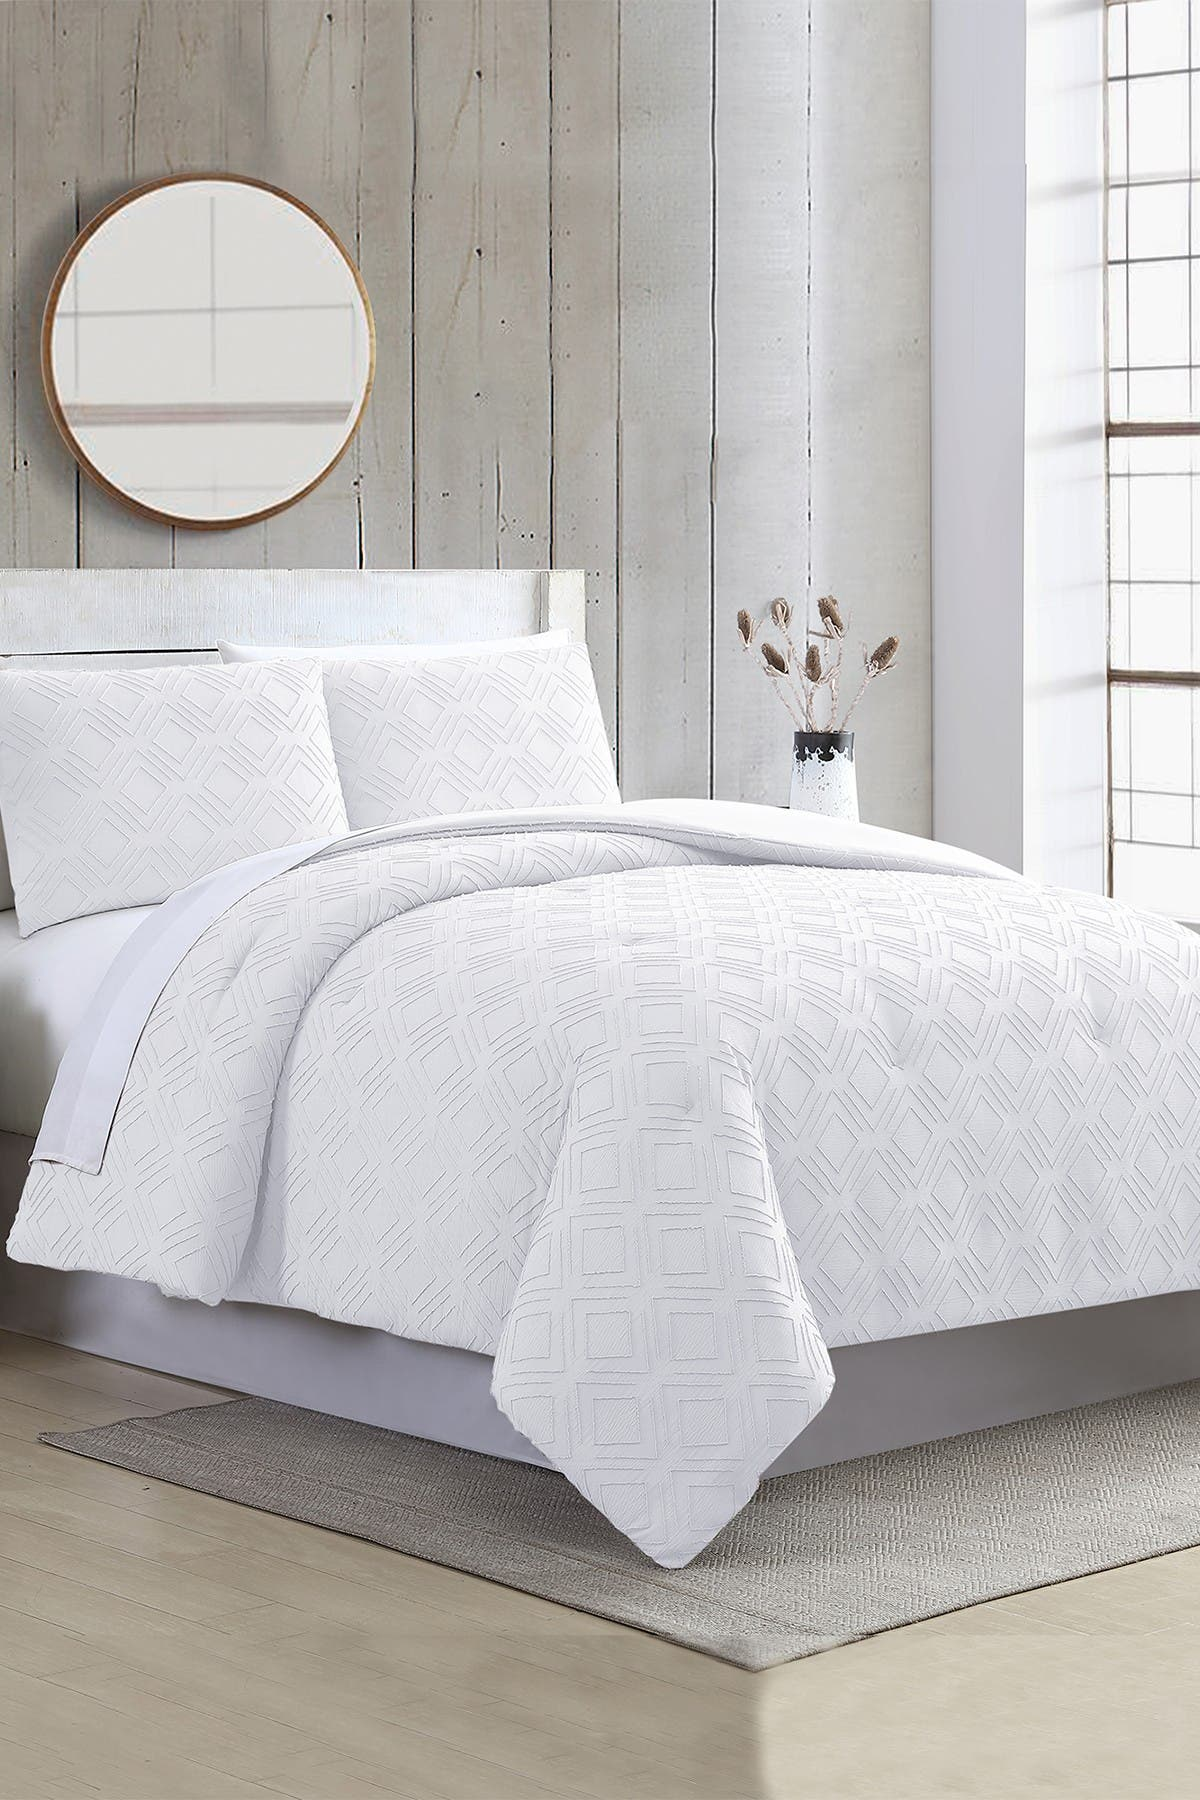 Image of Modern Threads 3-Piece Clipped Jacquard Comforter Set - Ethos White - King